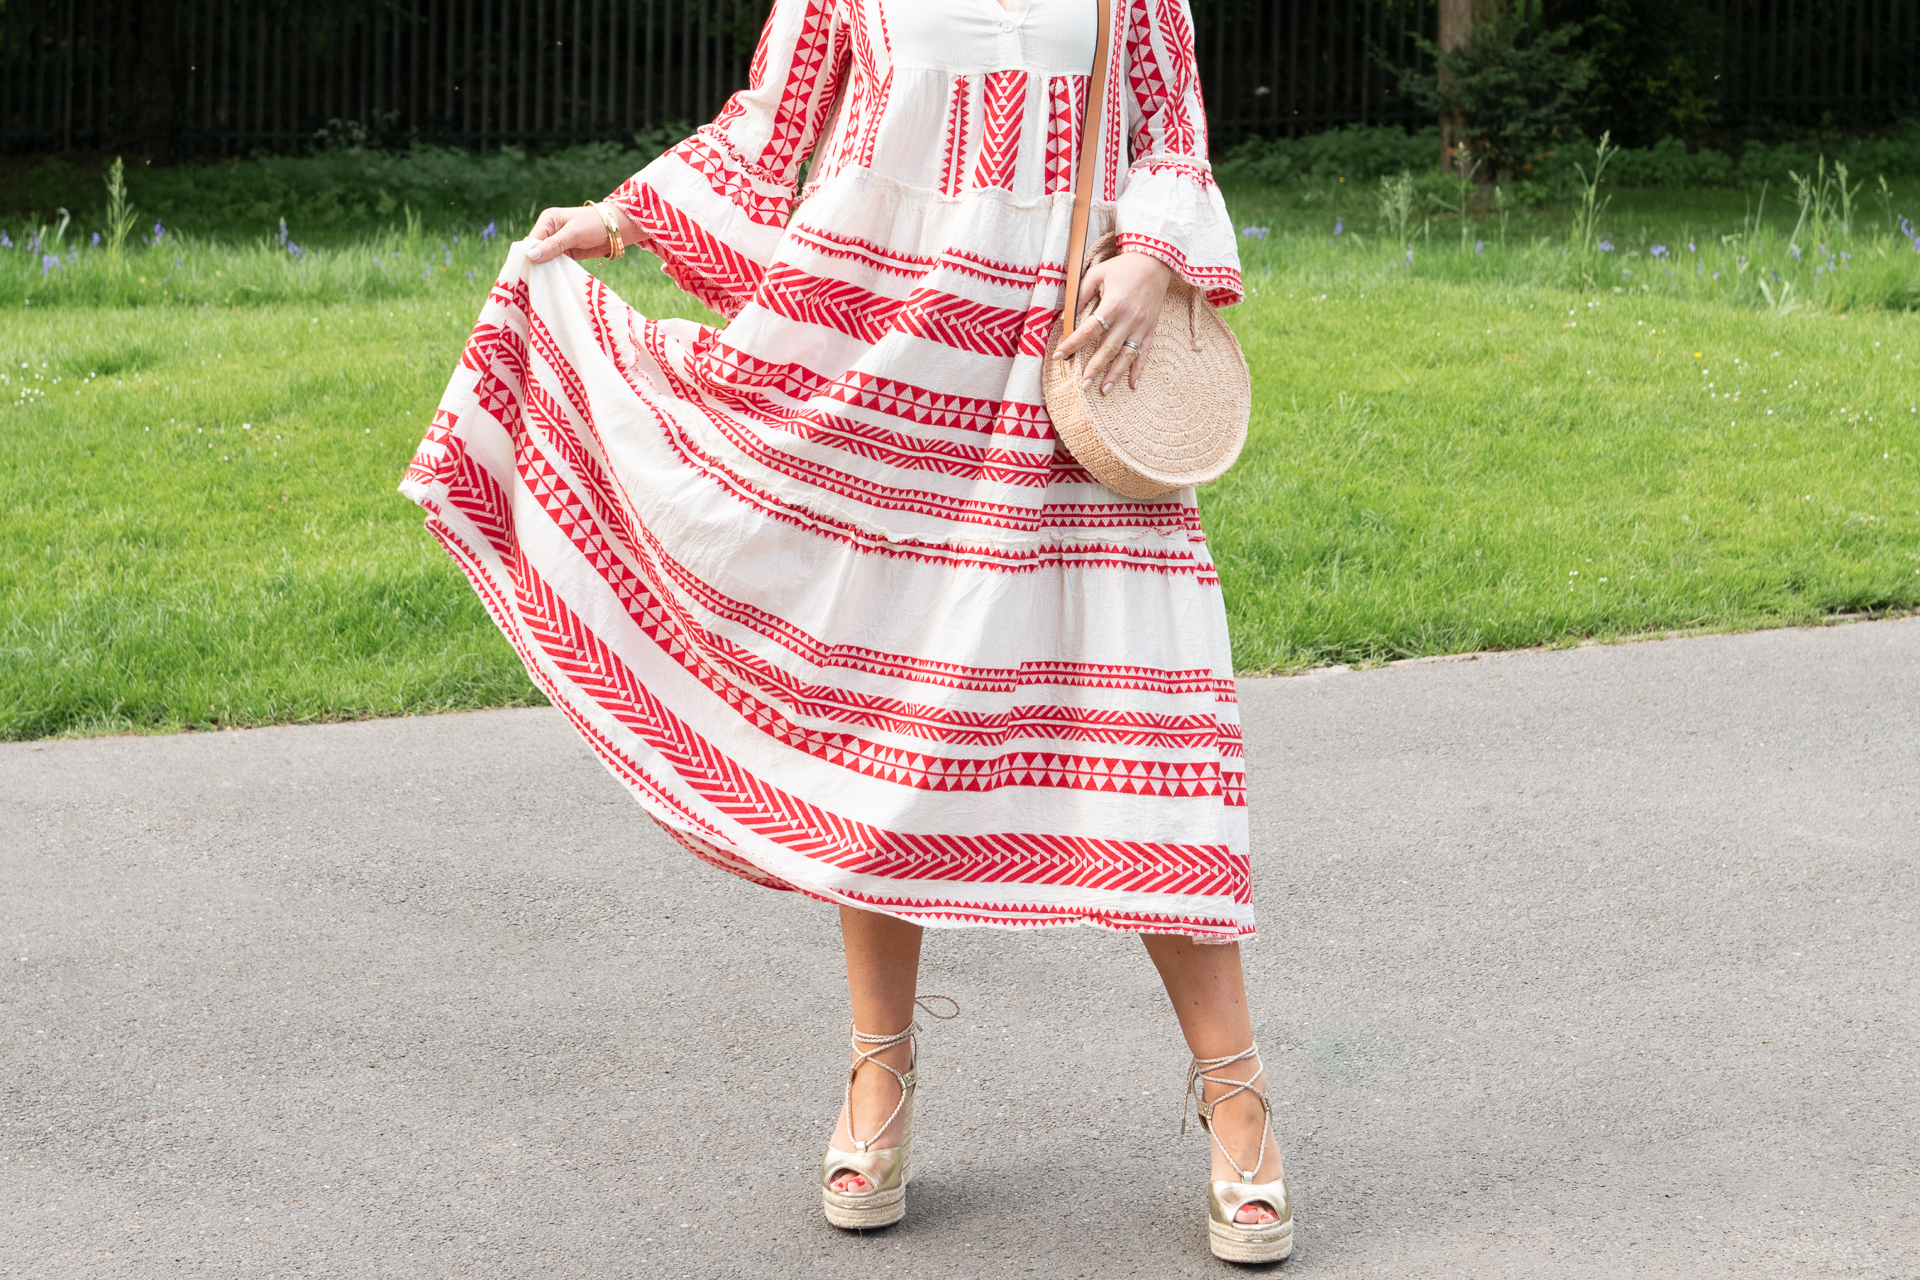 starw bag and espadrilles with the aztec dress